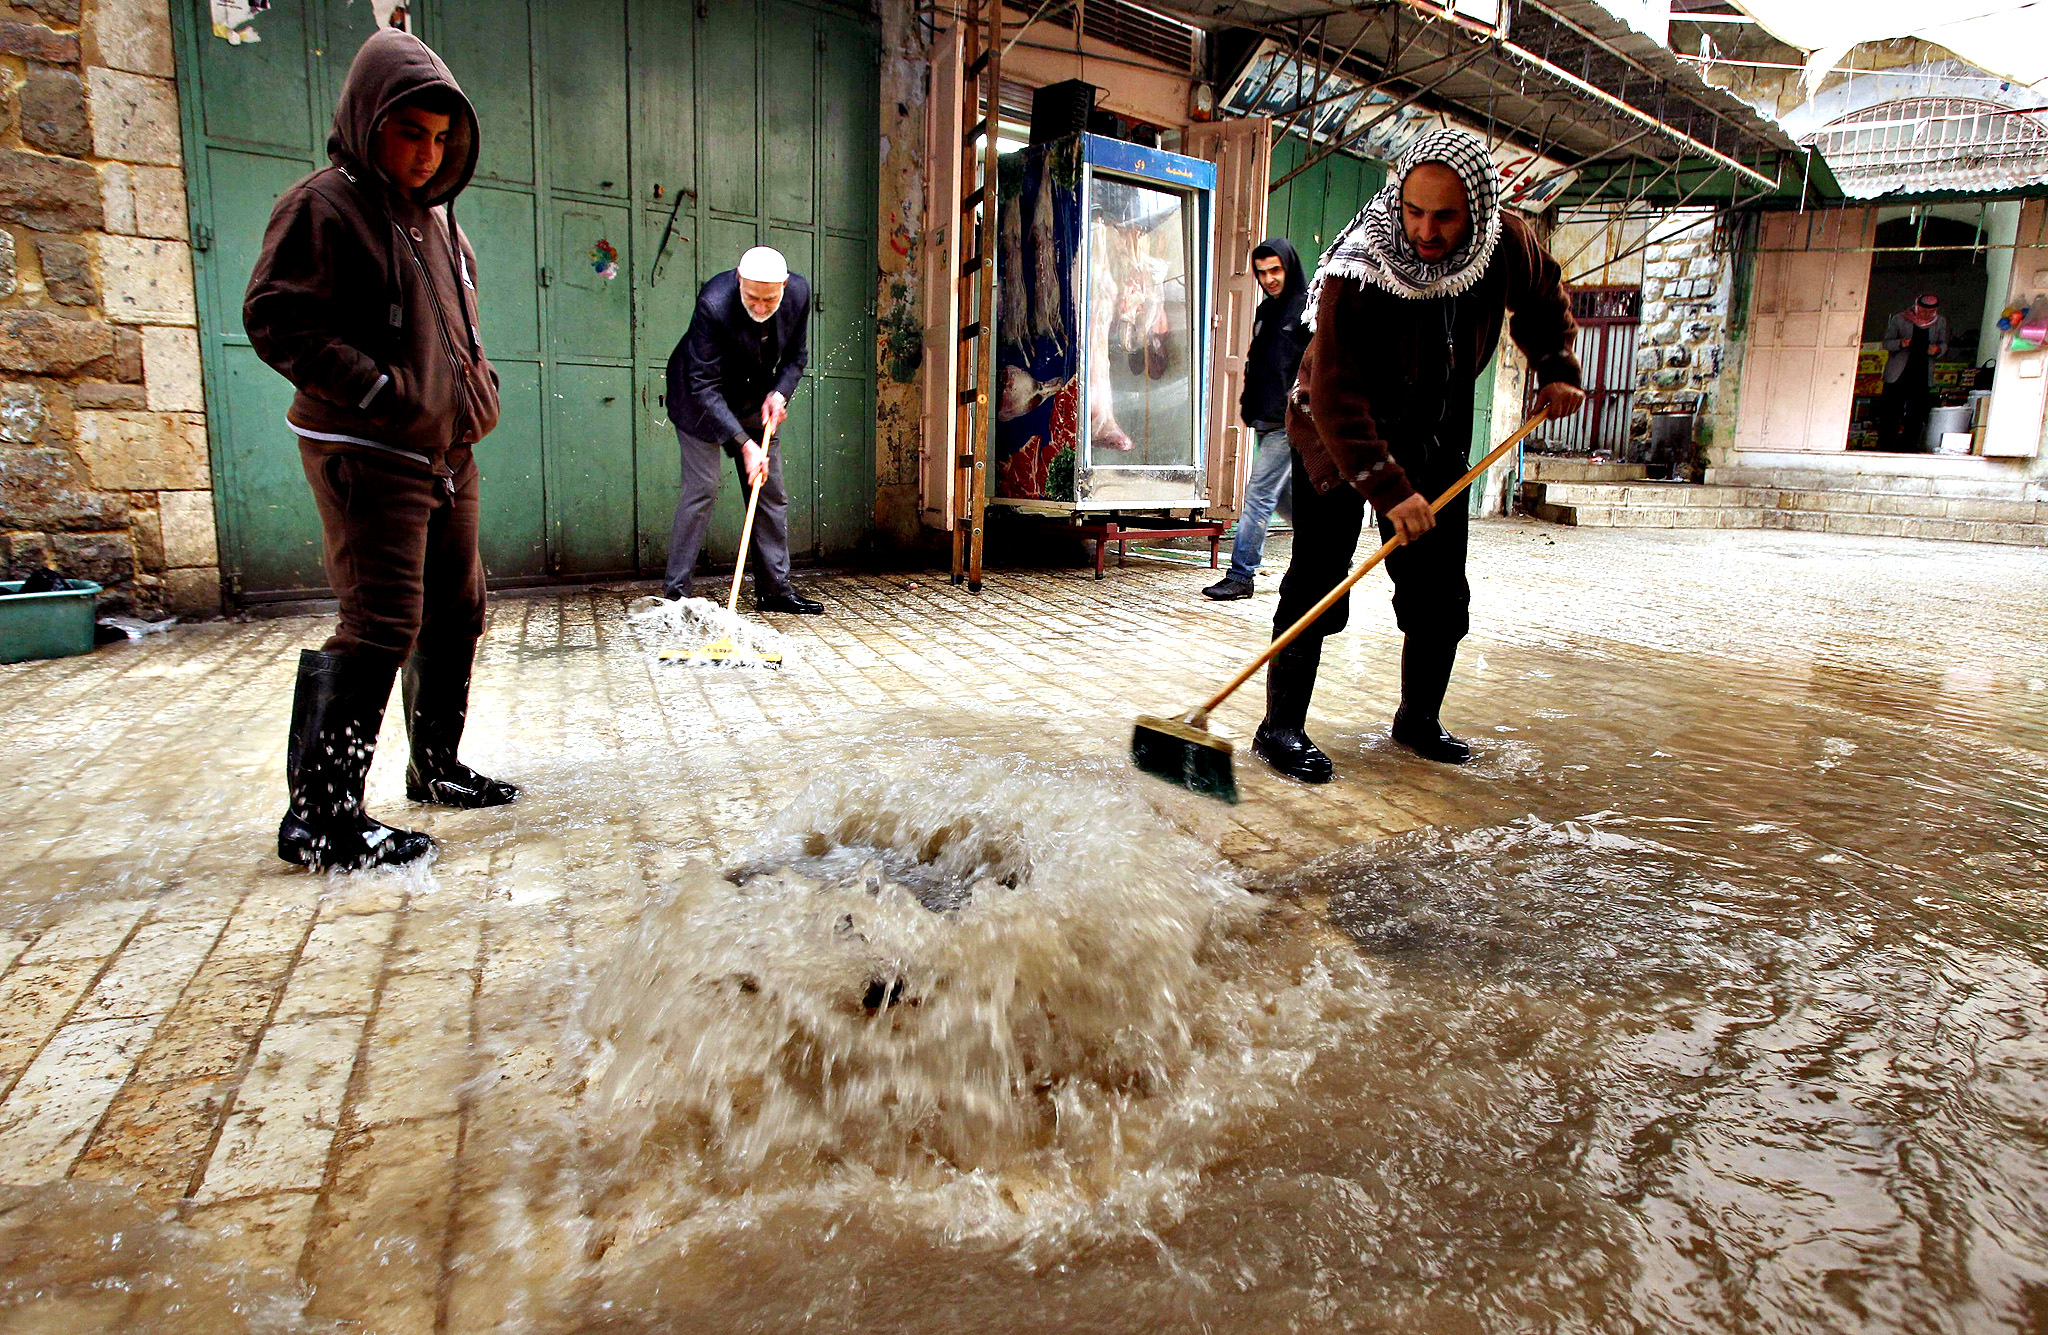 Palestinian men try to prevent flood water from entering shops in the old city of Hebron on November 27, 2014 as a fierce winter storm which has been battering the region for the past four days.